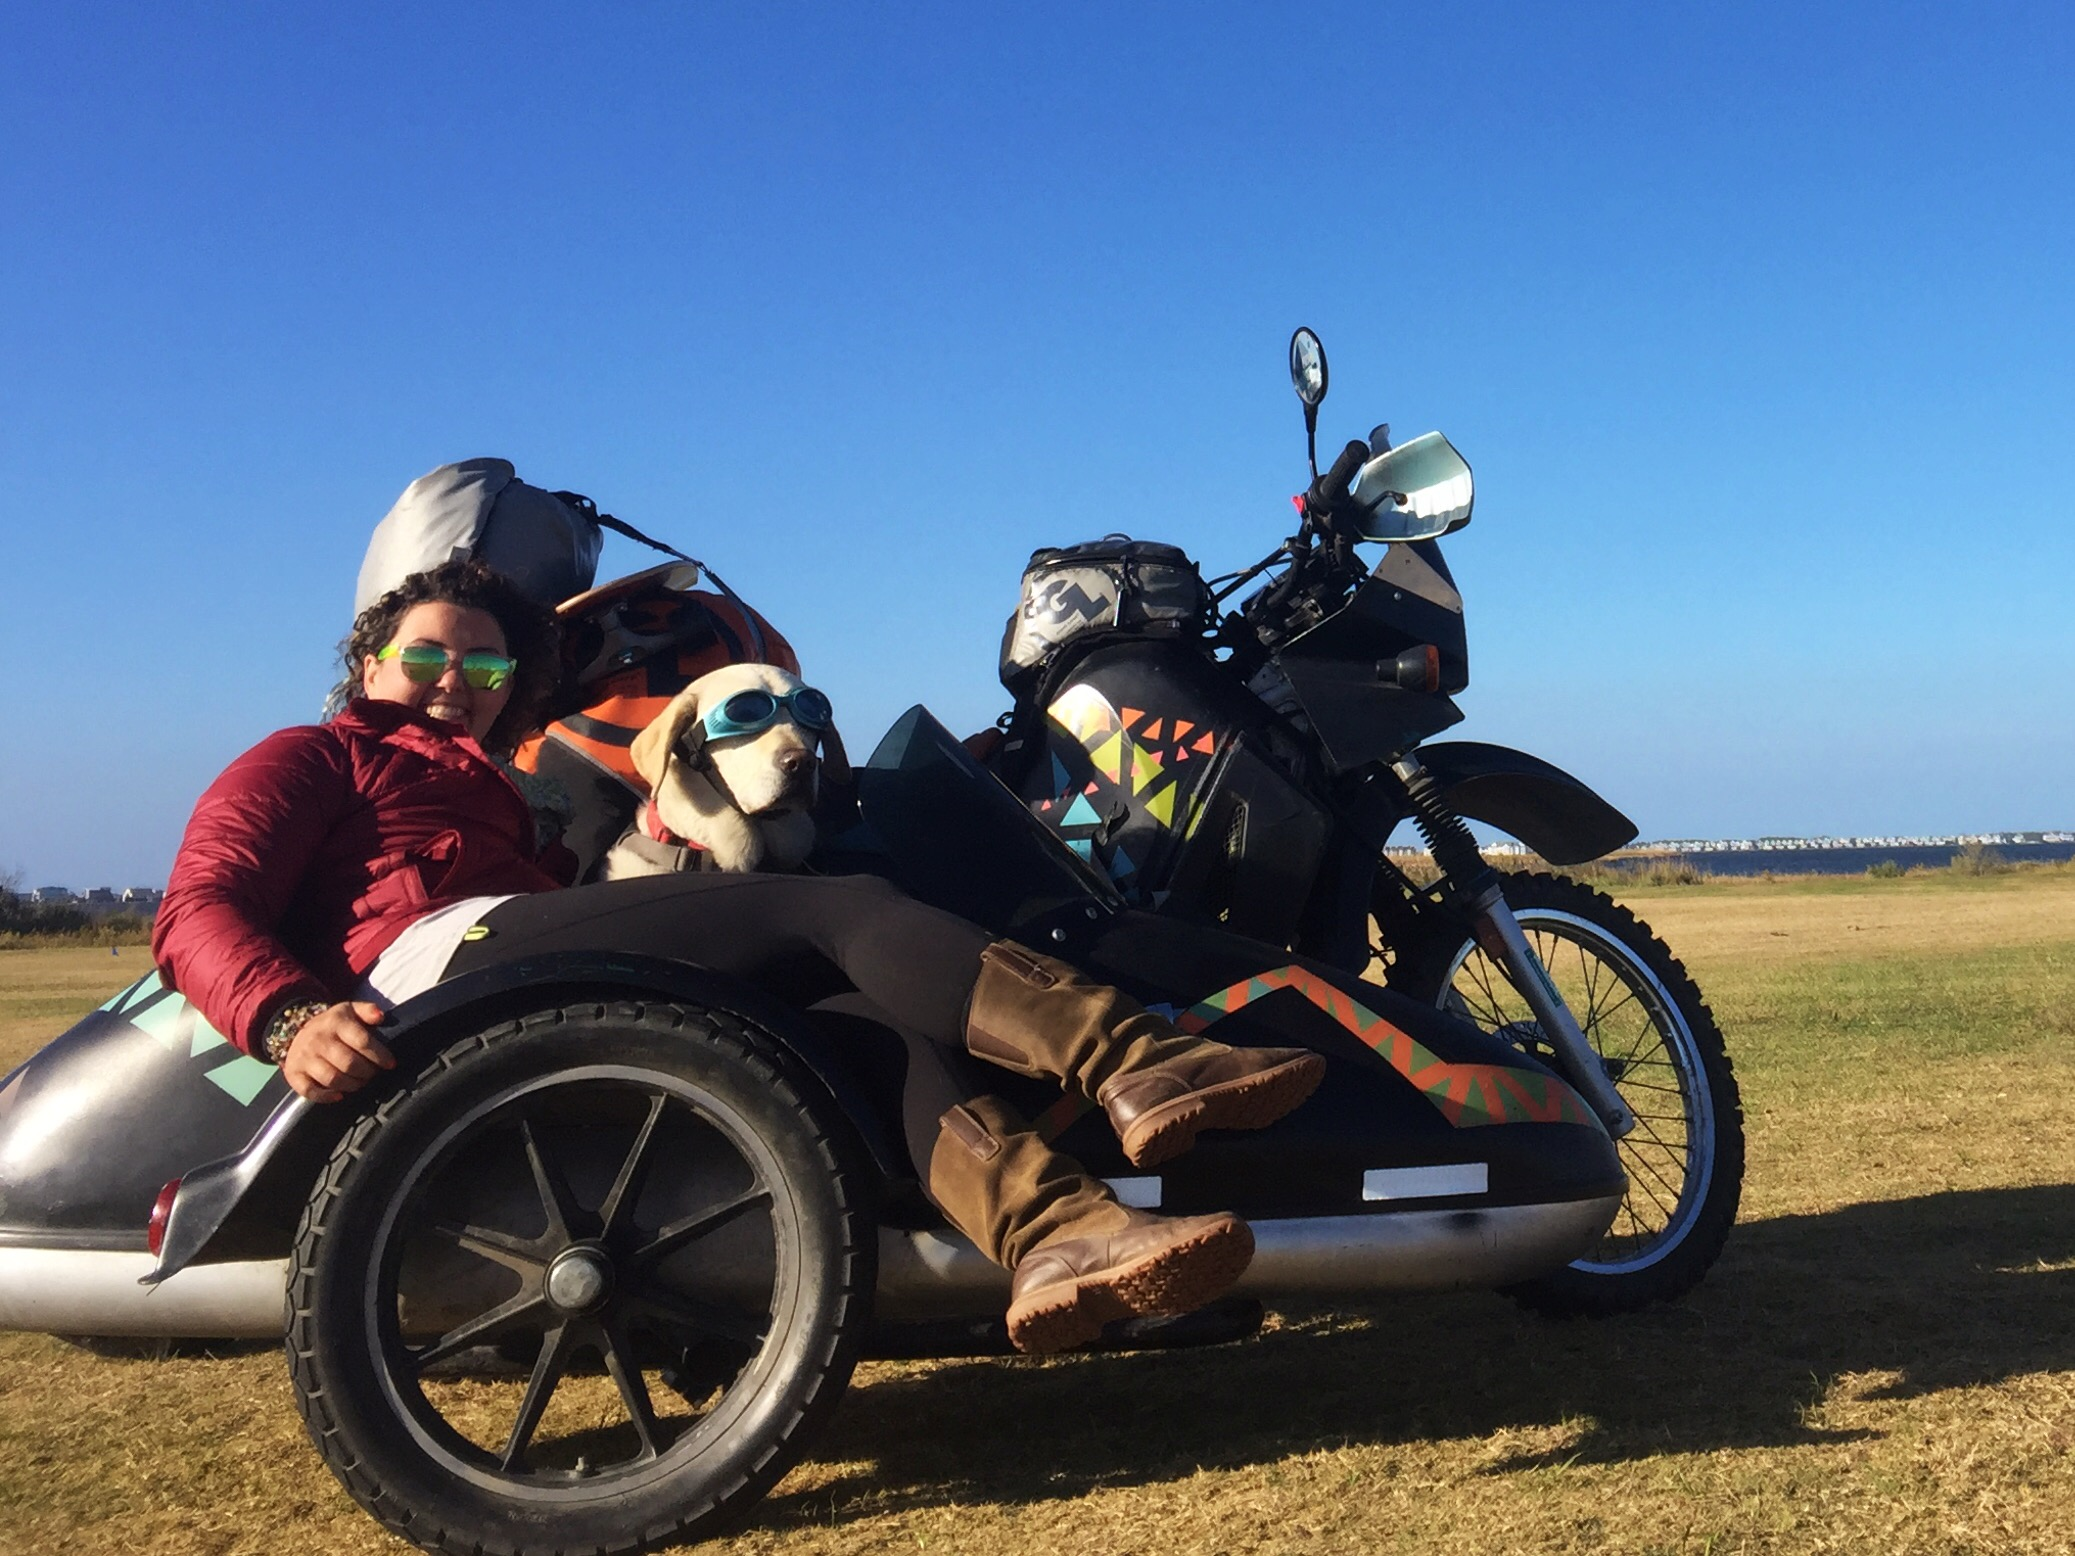 Operation Moto Dog featuring Mallory Paige, Baylor the dog and Rufio the motorcycle/sidecar.